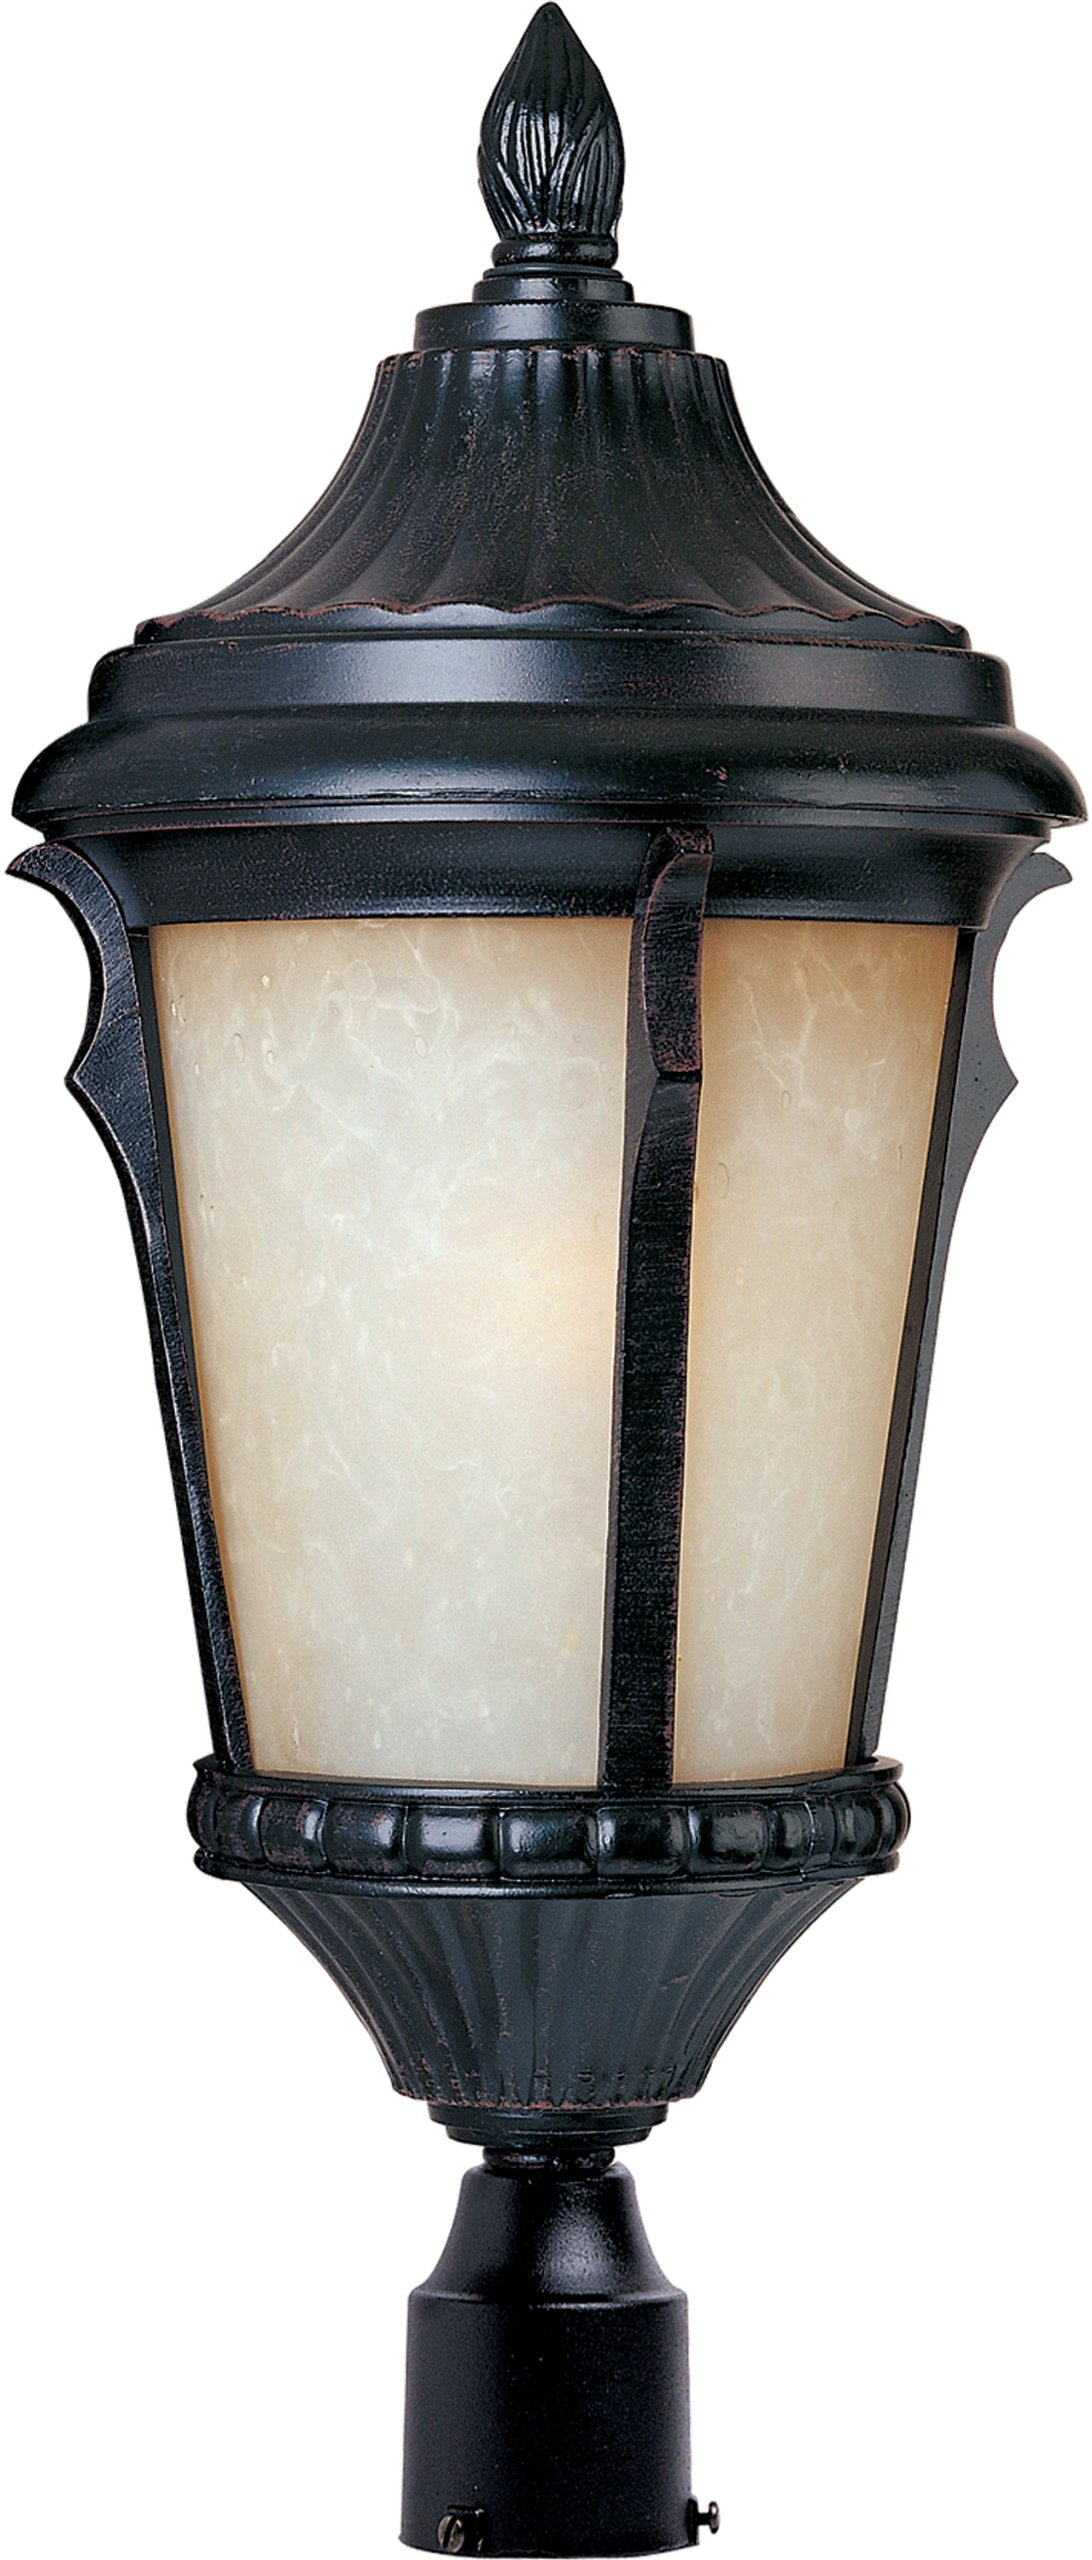 Maxim 55010LTES Odessa LED 1-Light Outdoor Pole/Post Lantern, Espresso Finish, Latte Glass, LED Bulb , 40W Max., Wet Safety Rating, Standard Dimmable, Glass Shade Material, 2016 Rated Lumens